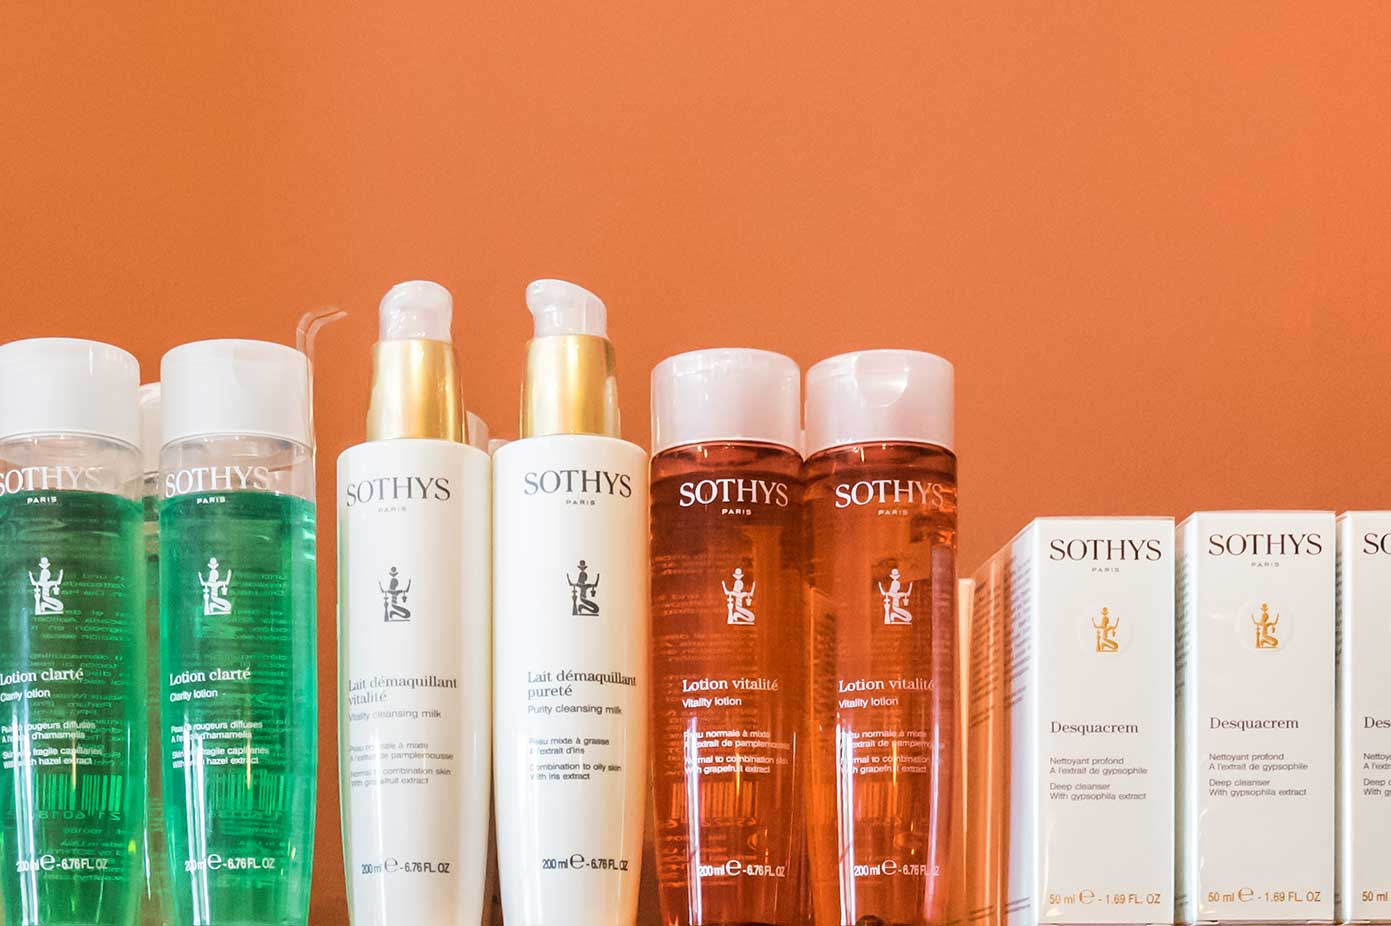 spa sothys products